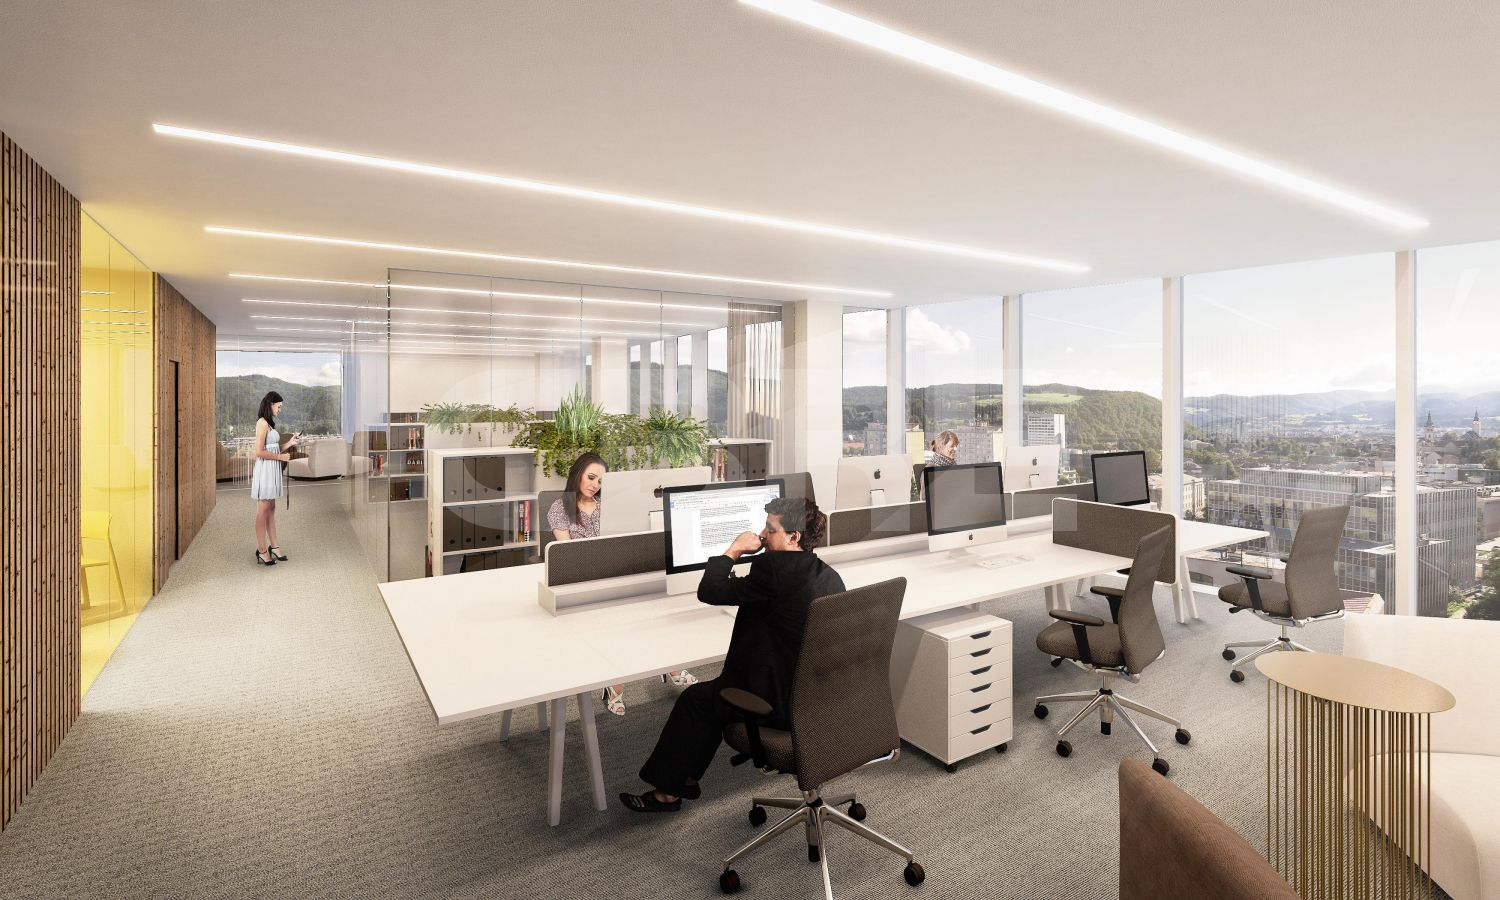 INTERPOLIS Office Center, Banská Bystrica | Offices for rent by CBRE | 4